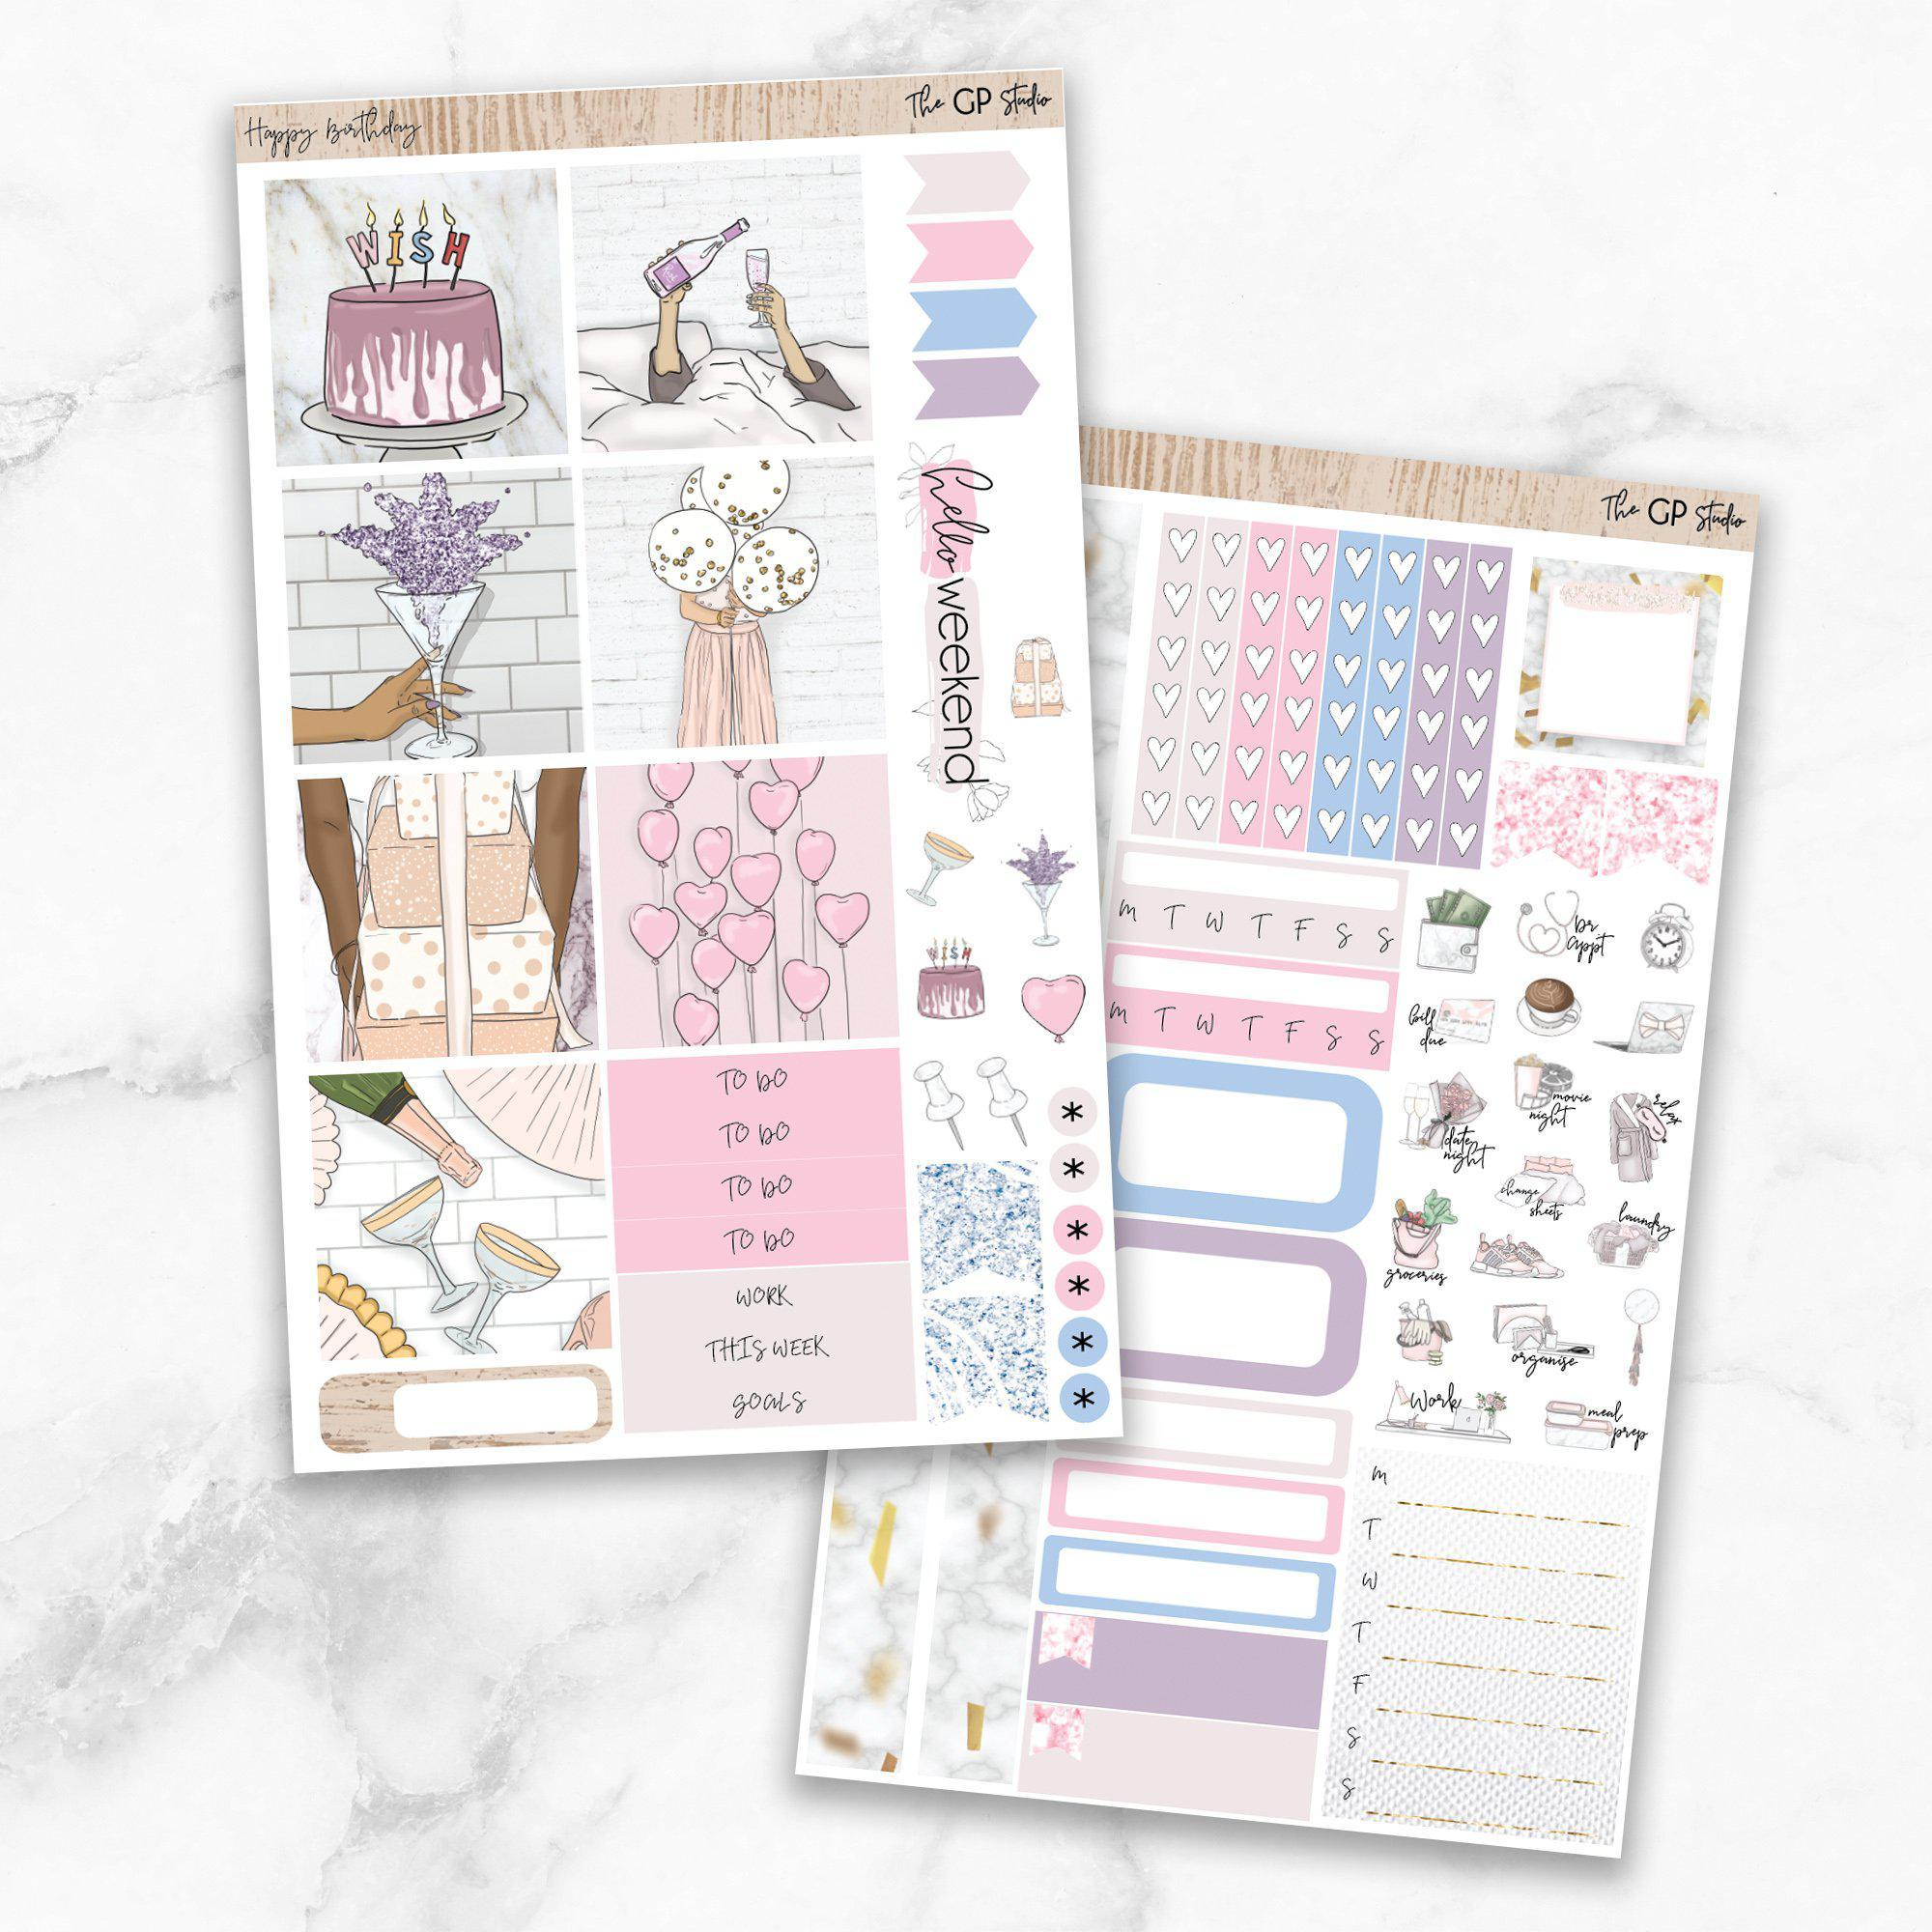 HAPPY BIRTHDAY Mini Size Planner Sticker Kit-The GP Studio